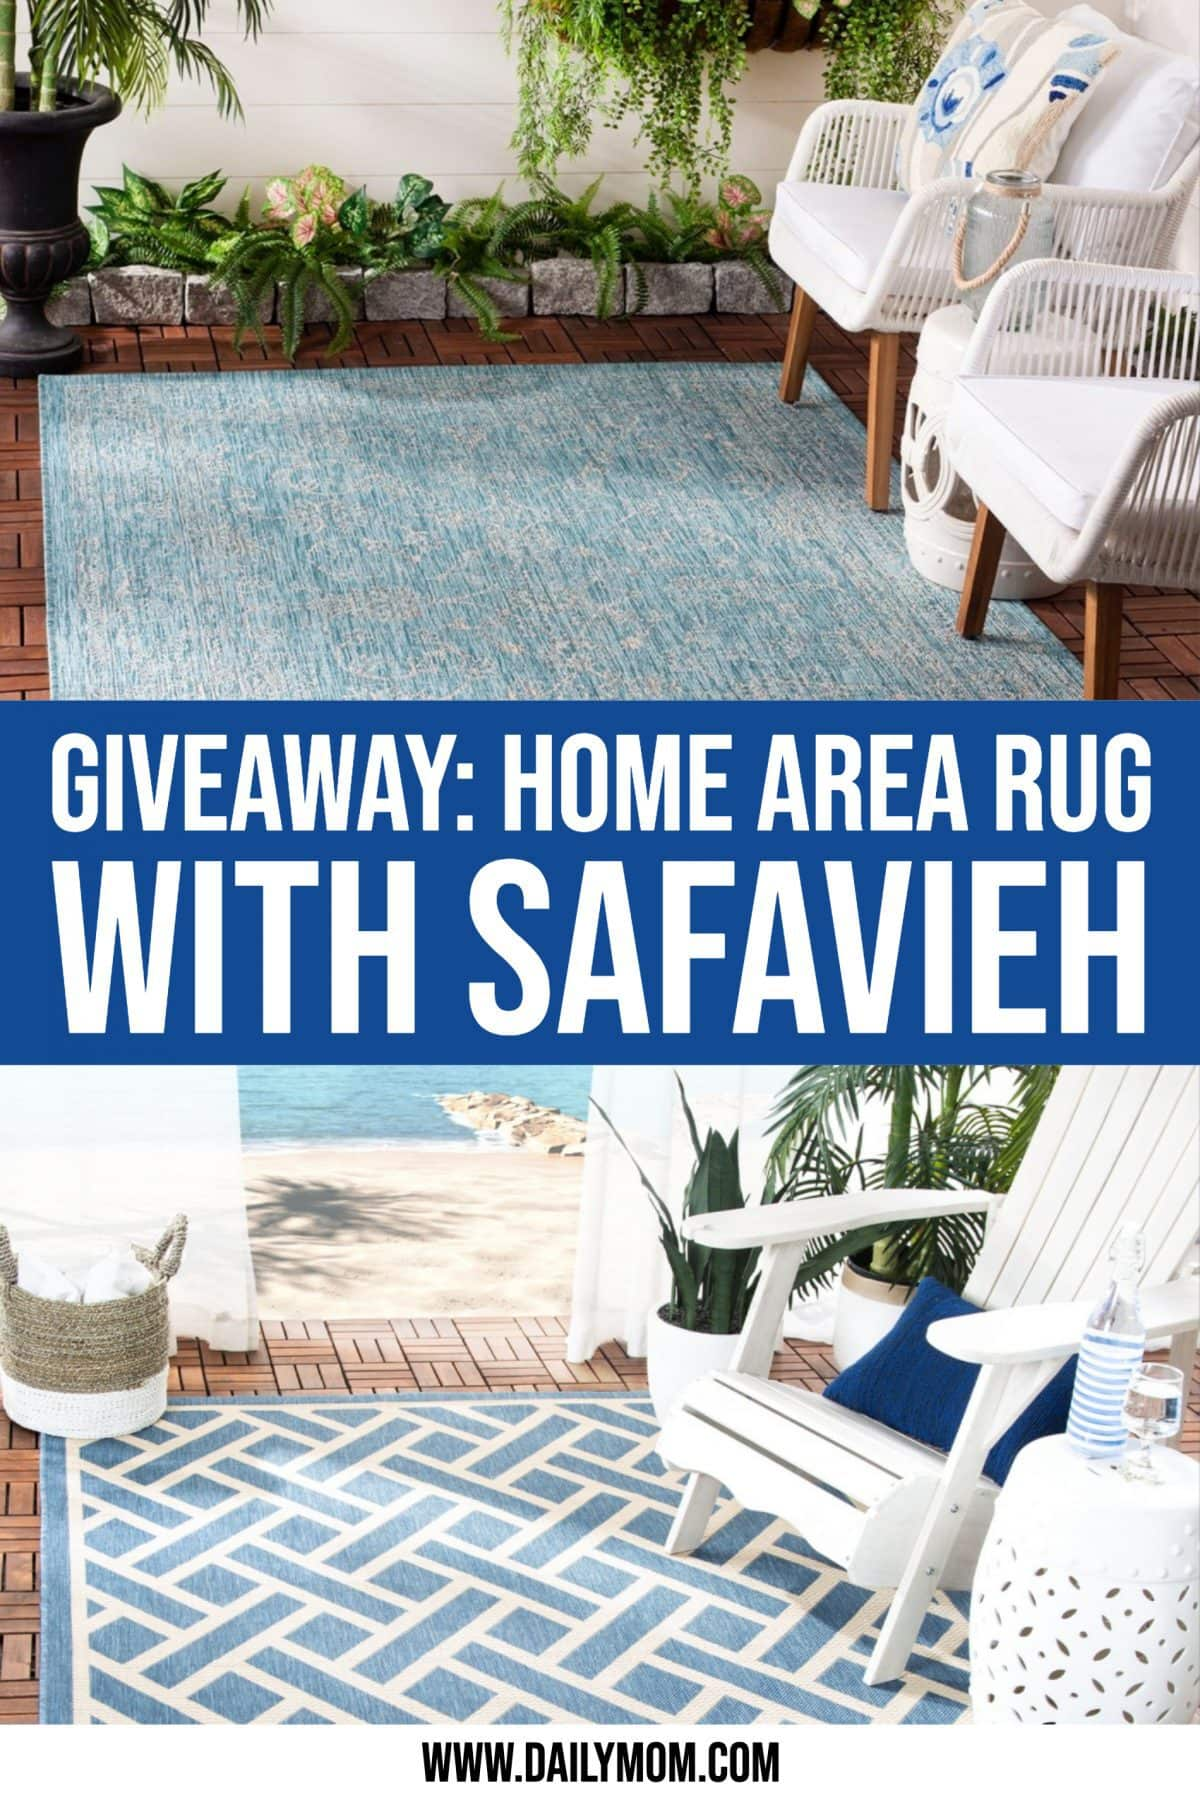 Giveaway: Win A Safavieh Home Area Rug Just In Time For The Holidays